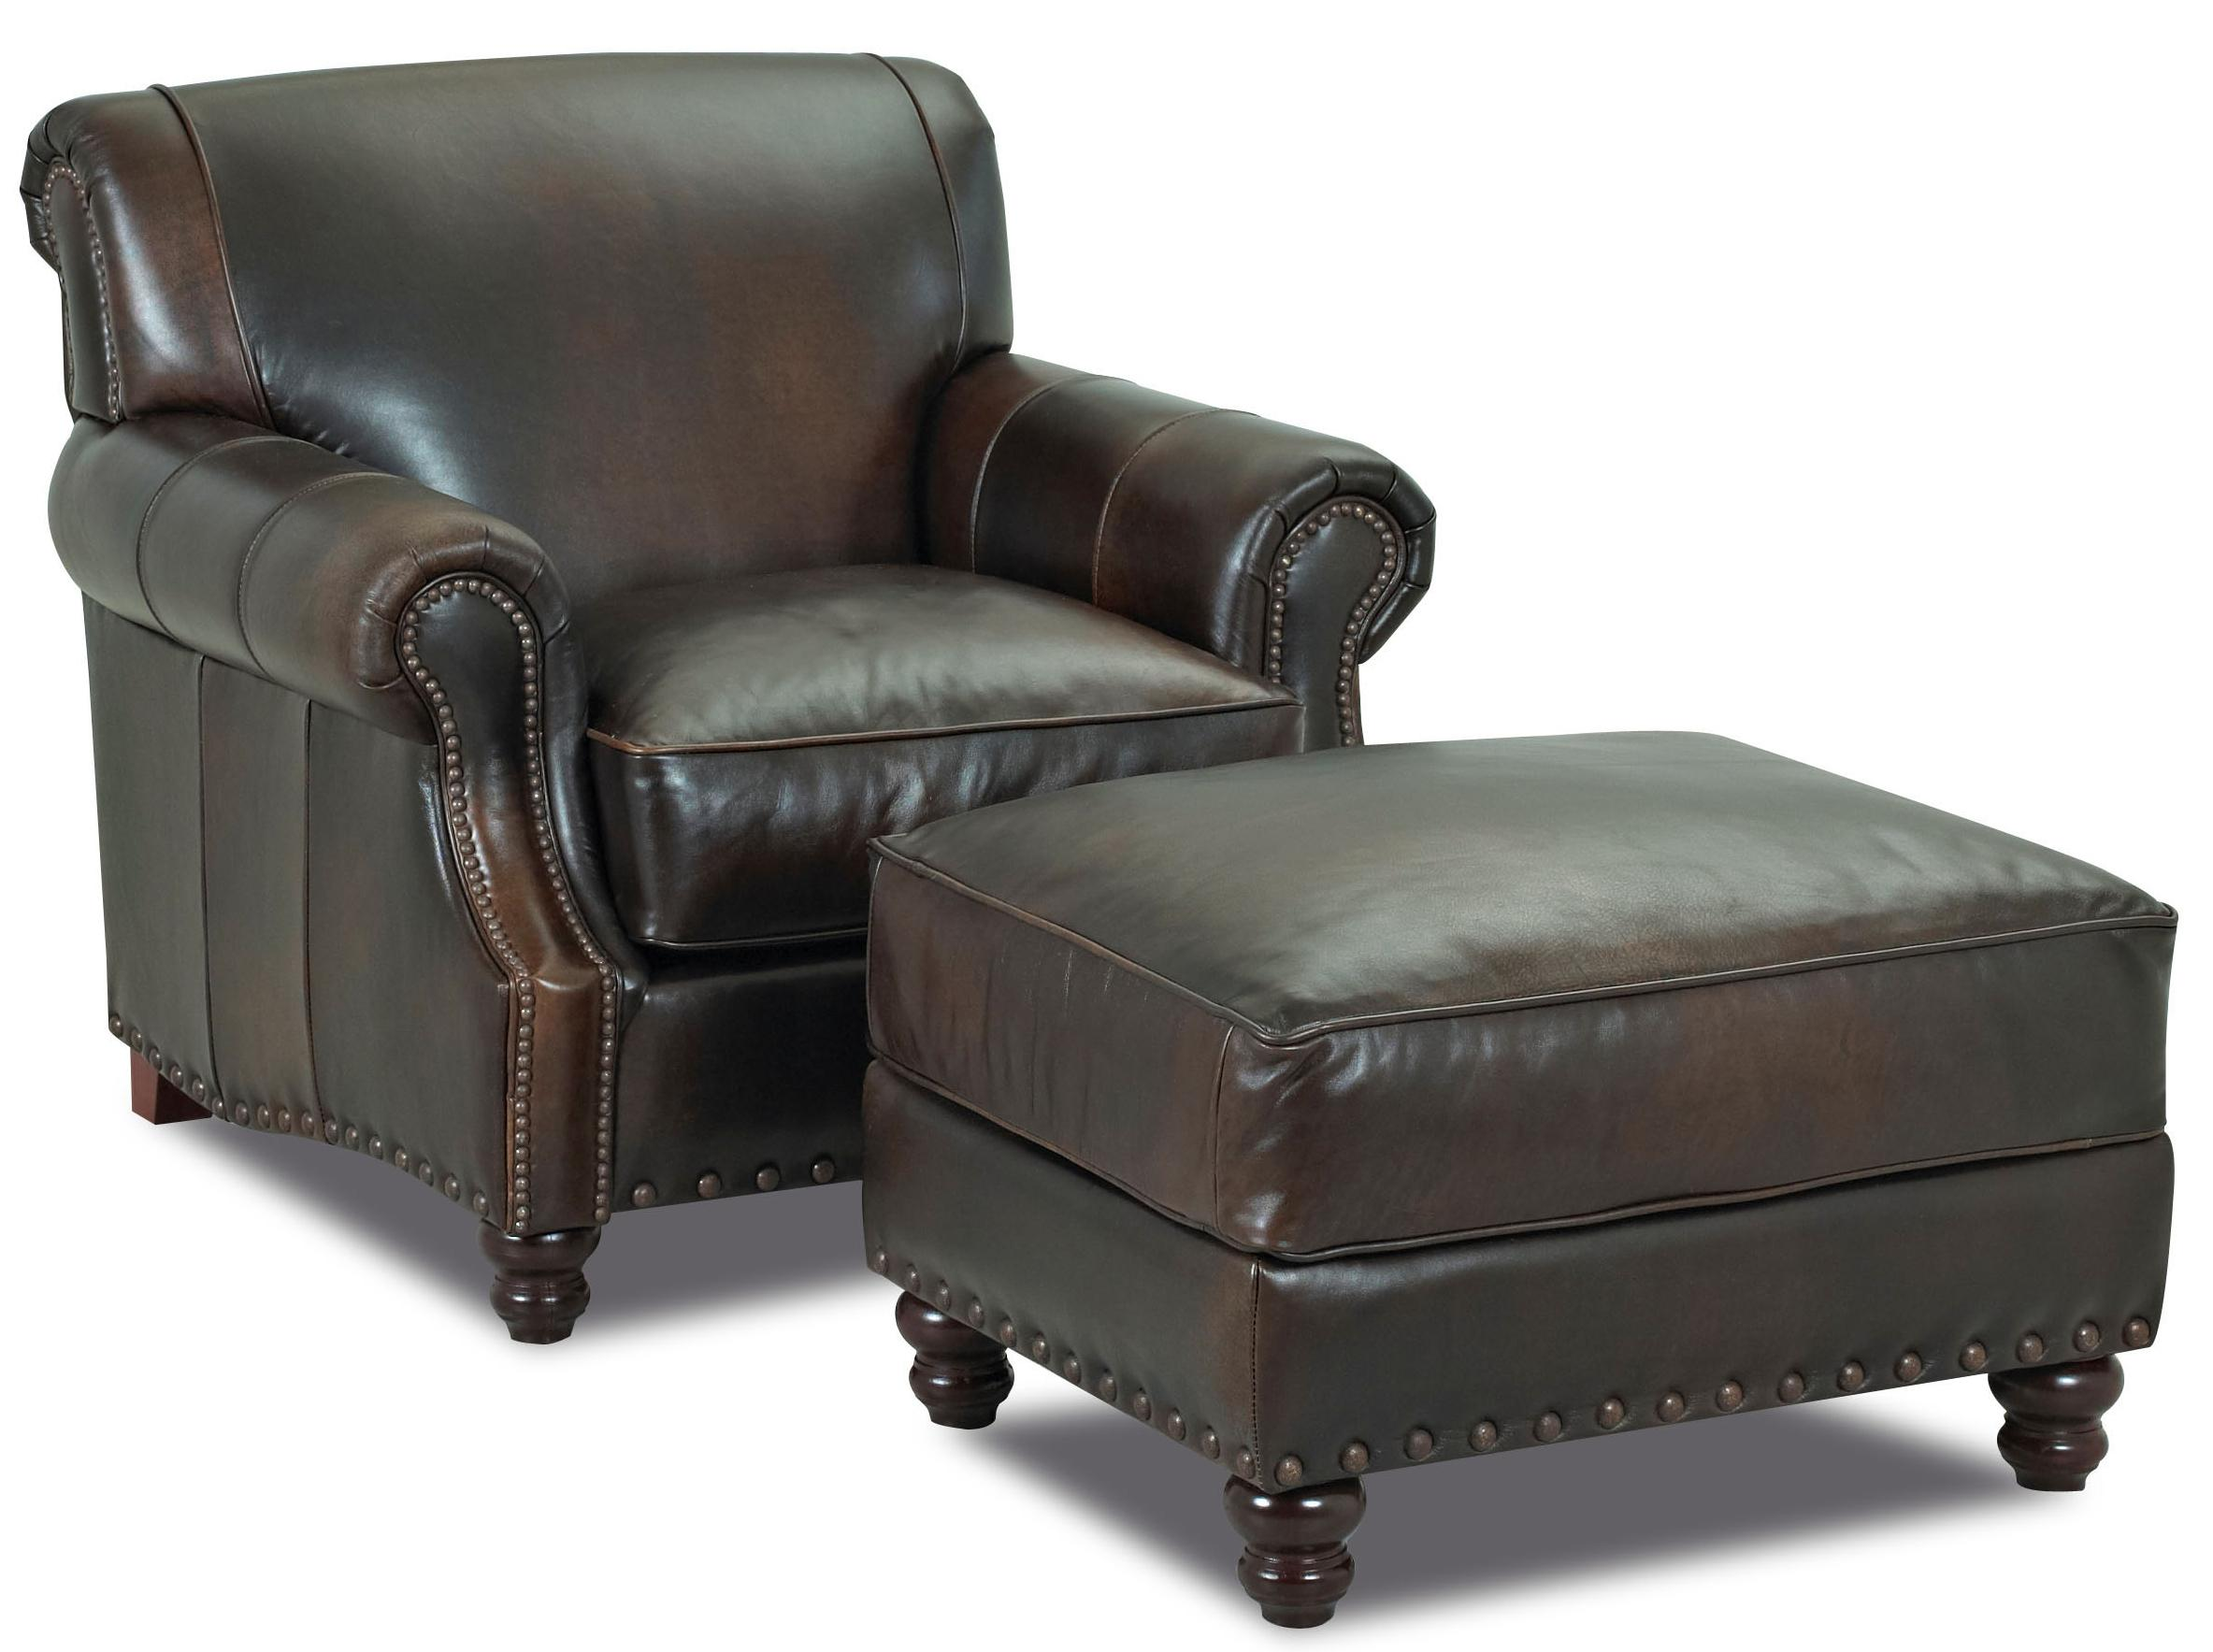 Klaussner Fremont Traditional Leather Arm Chair Amp Ottoman